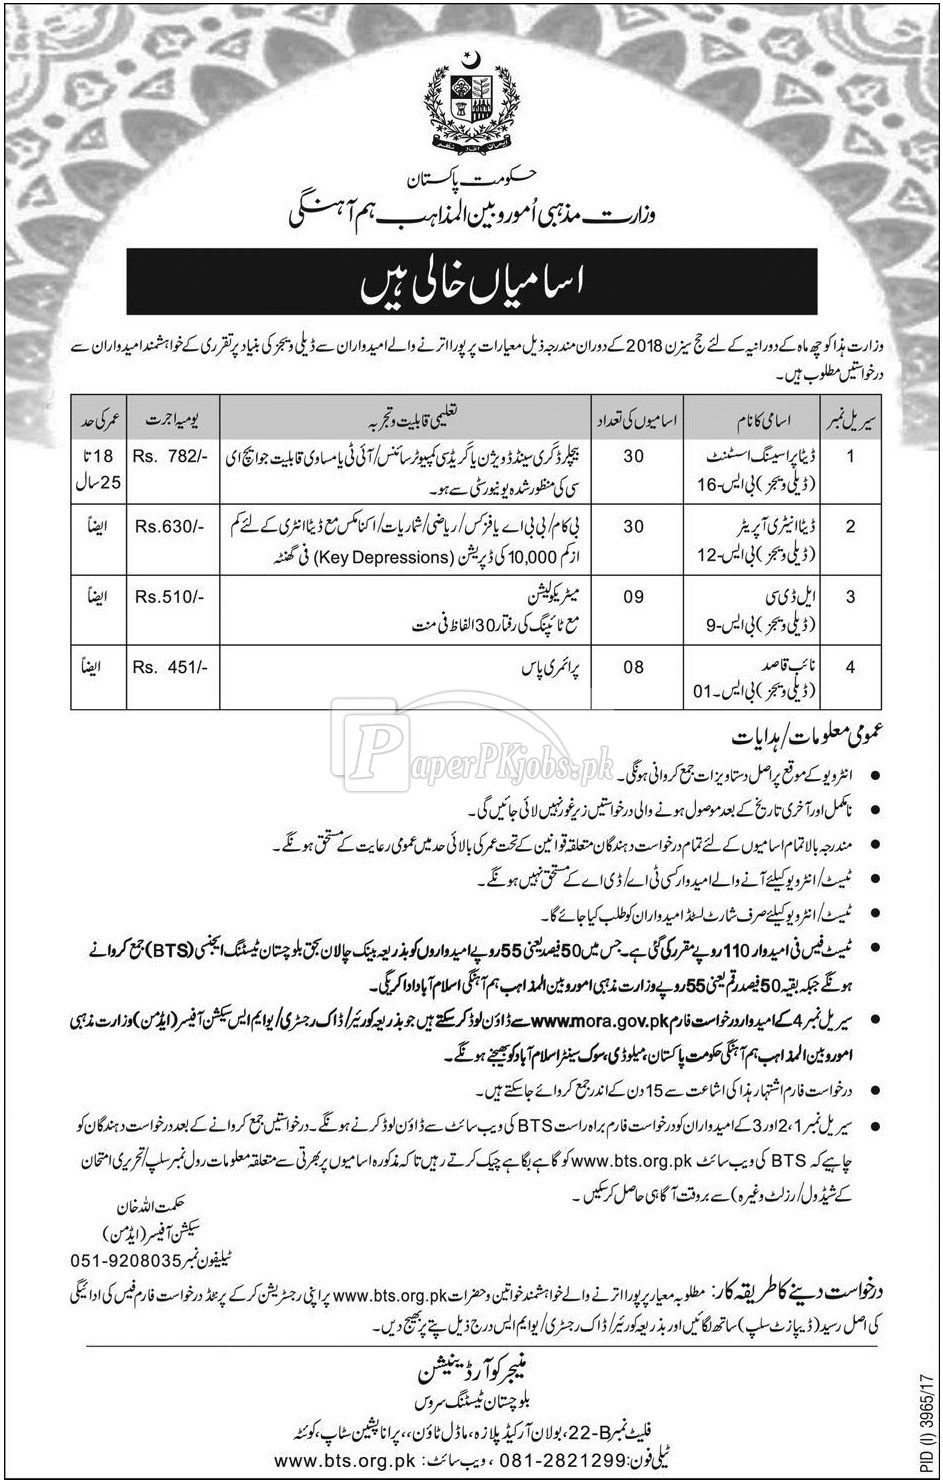 Ministry of Religious Affairs & Interfaith Harmony BTS Jobs 2018